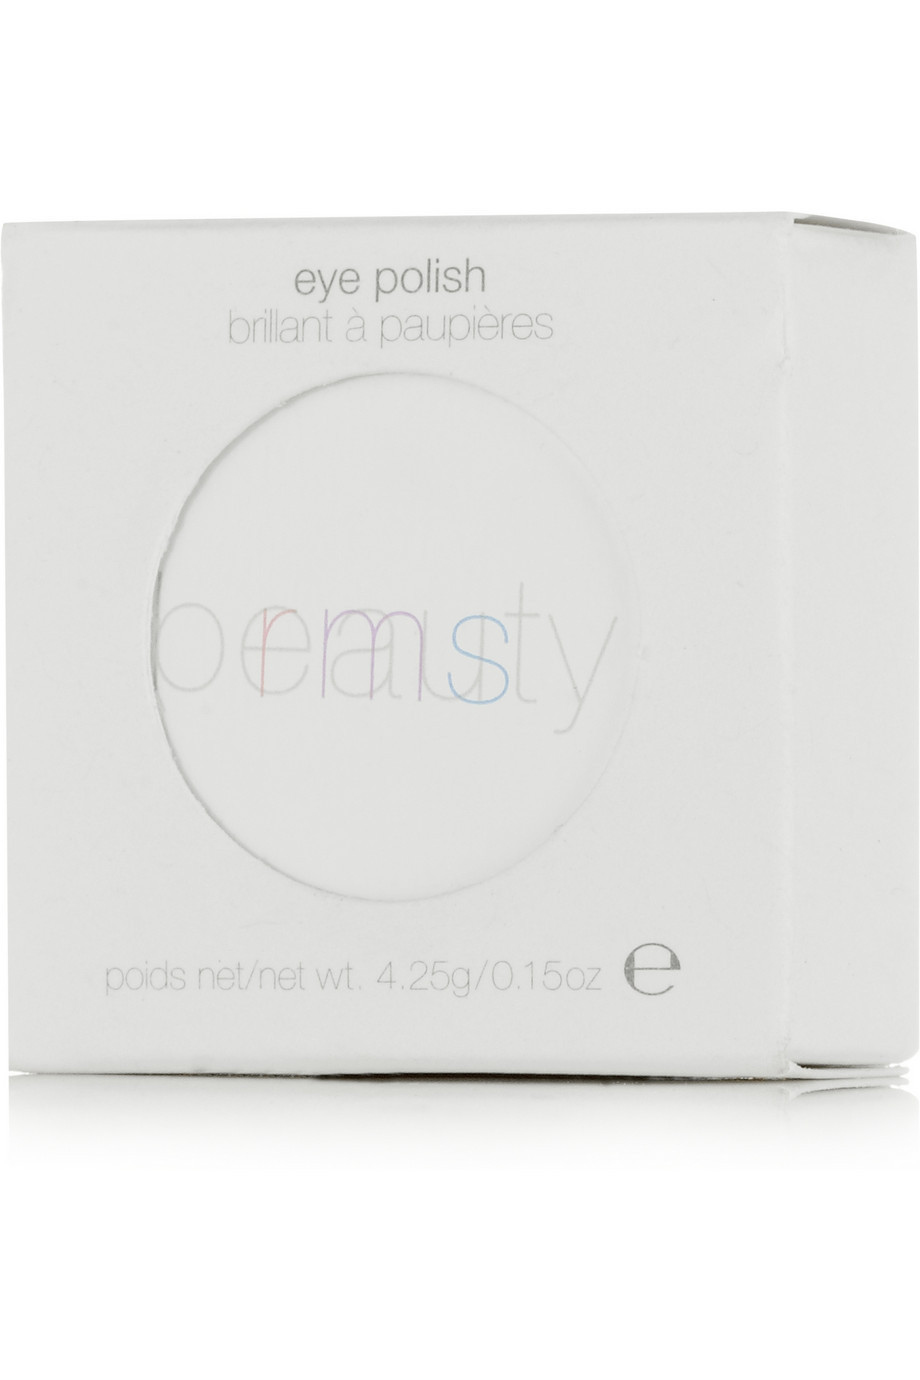 RMS BEAUTY Cream Eye Polish - Inspire